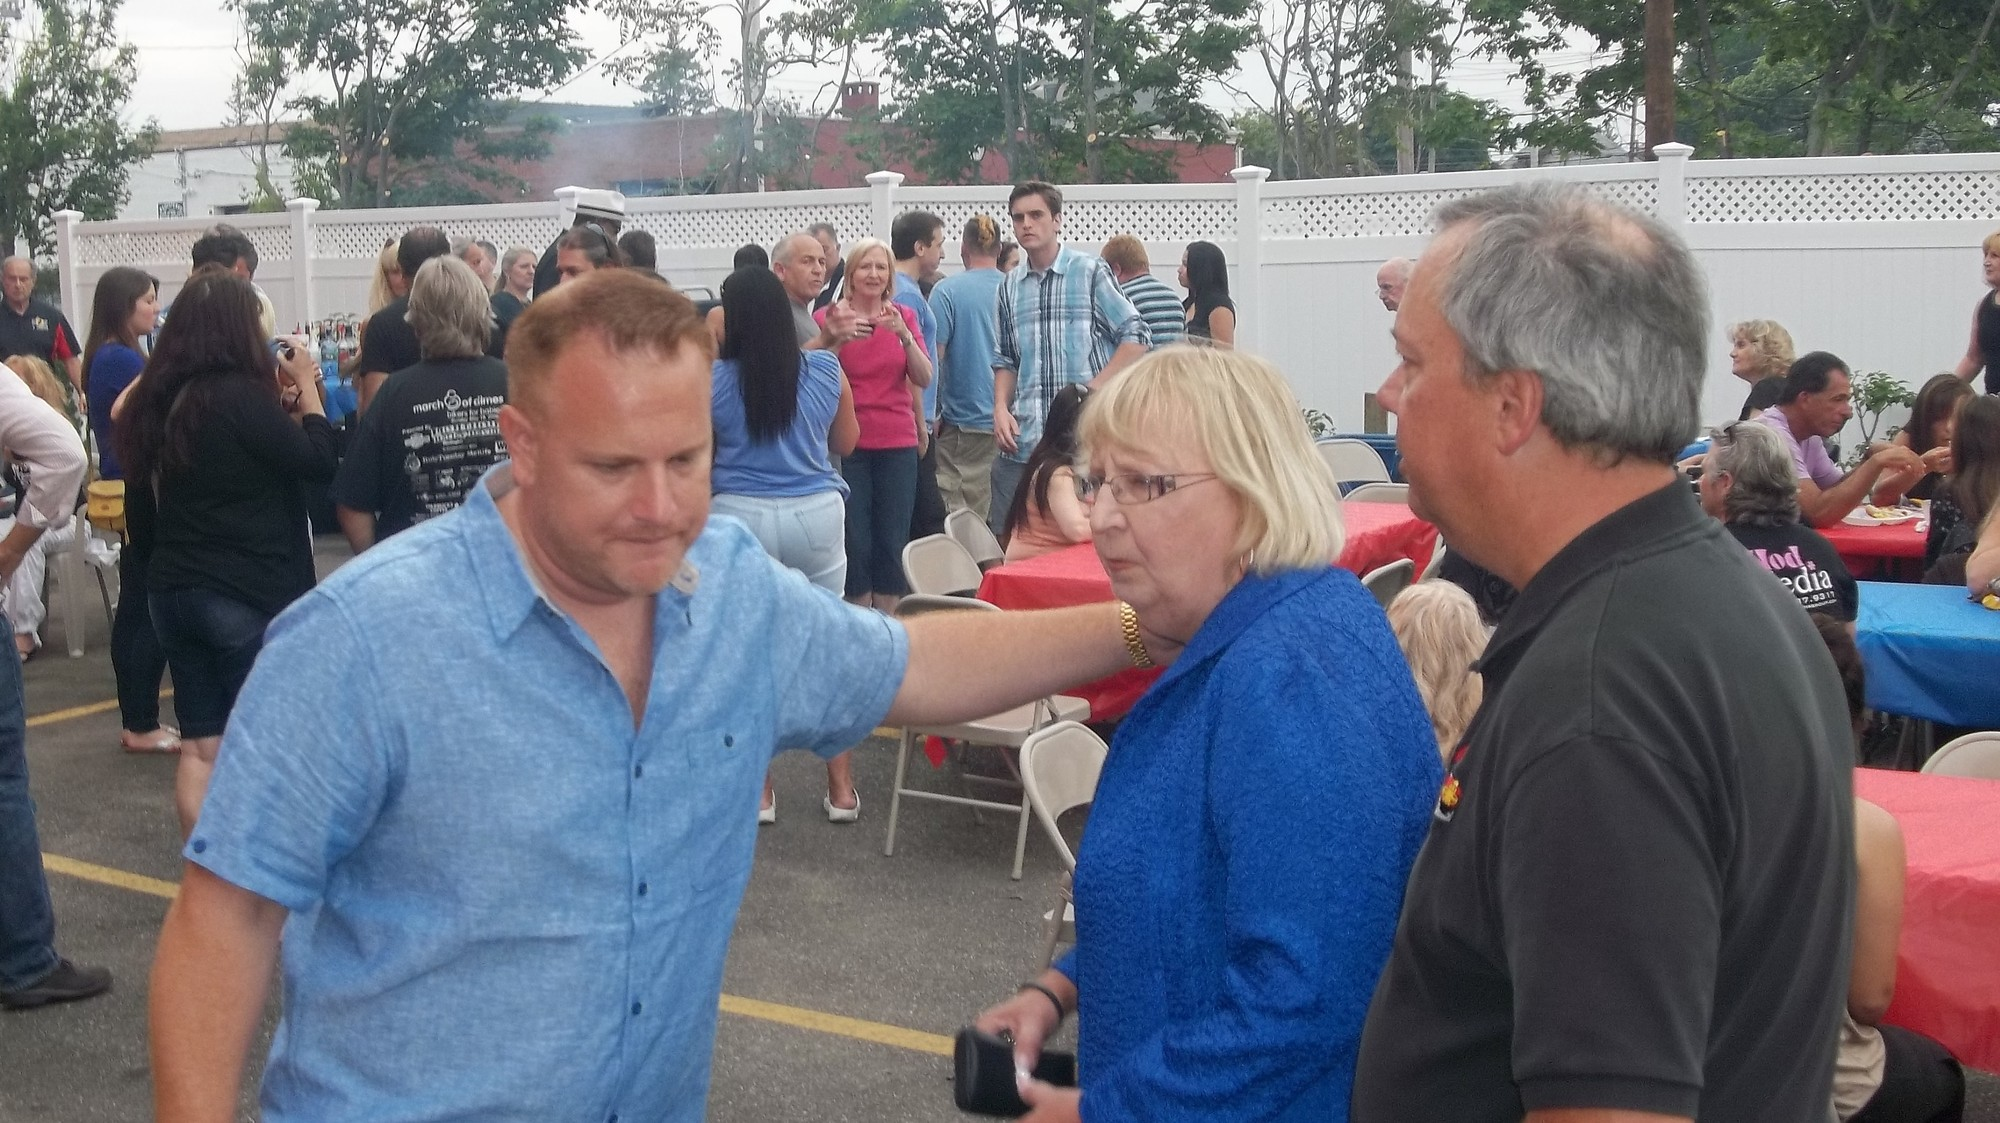 Hawksby greeted Chamber president Debbie Hirschberg and her husband Charlie at the barbecue on June 4.